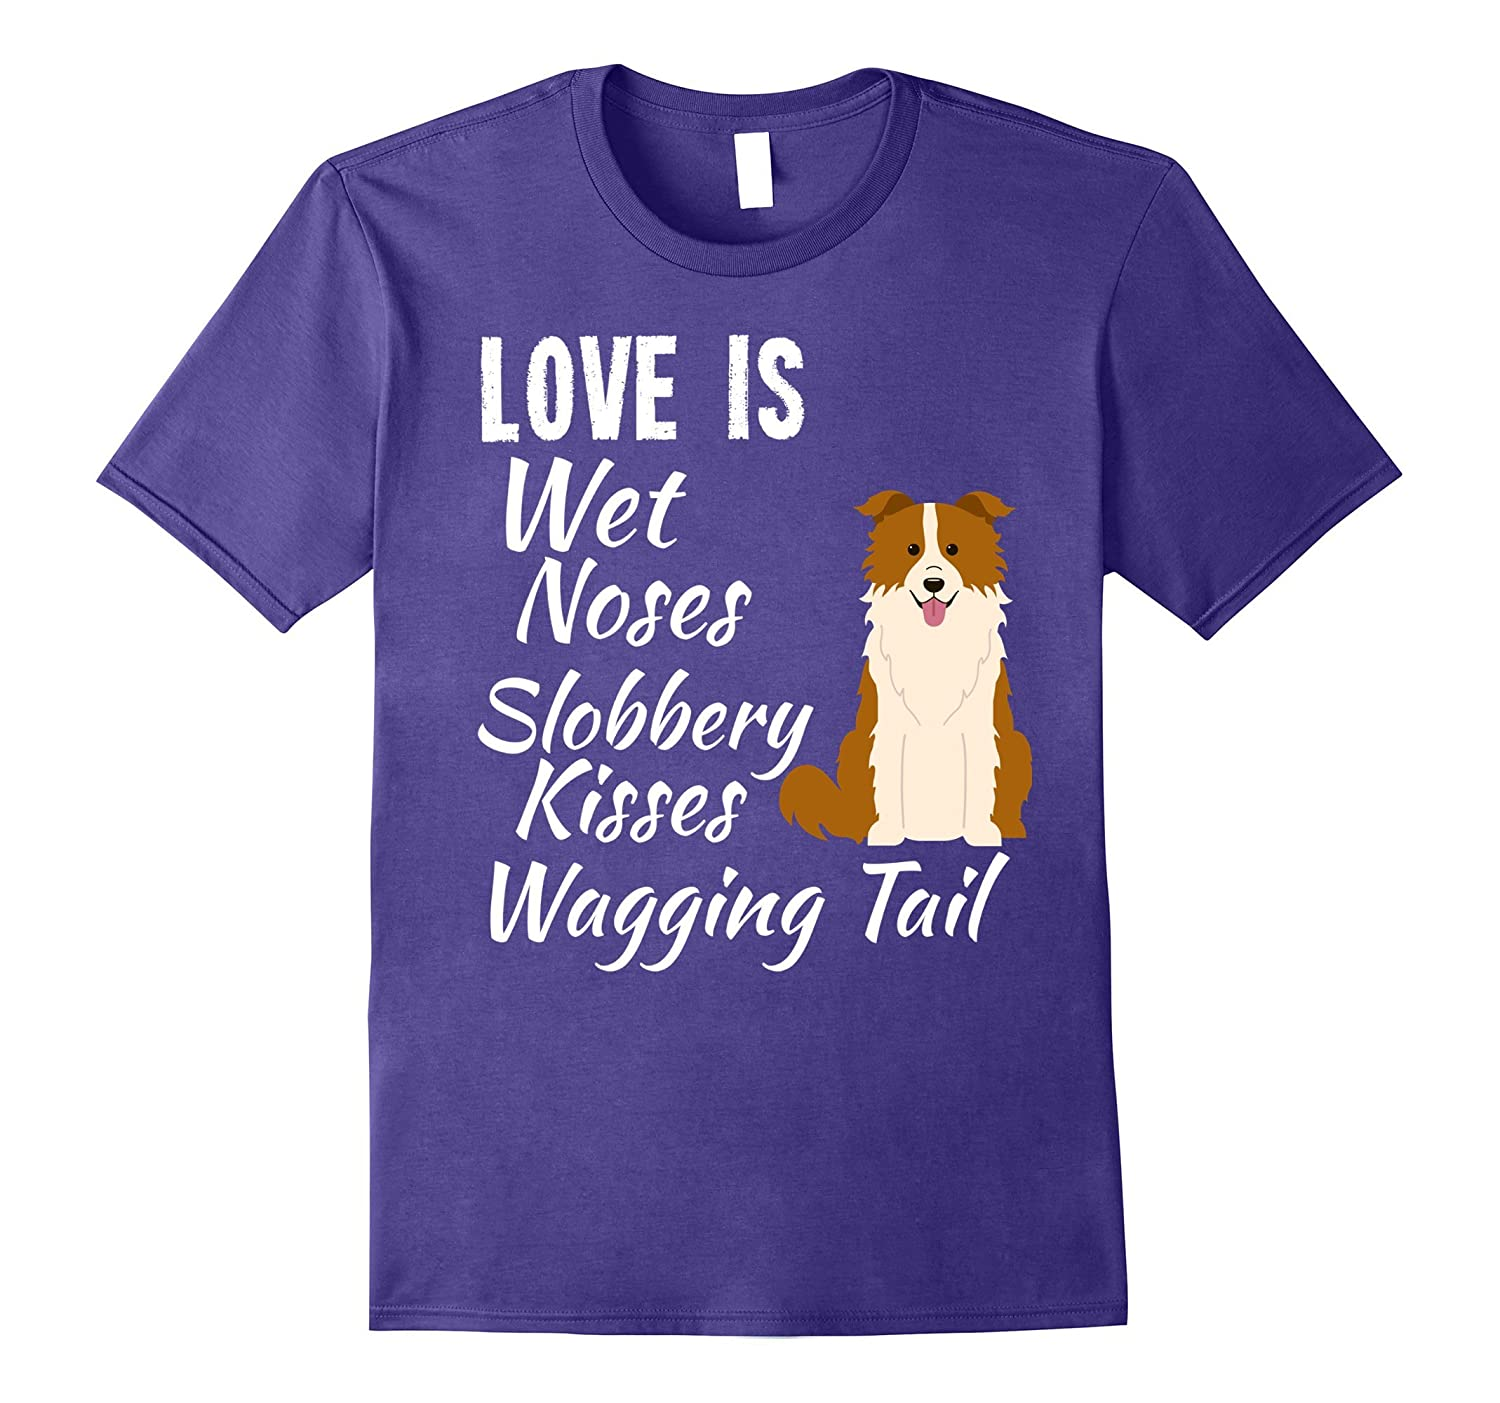 I love My Dog T-Shirt Border Collie Brown Red-ANZ